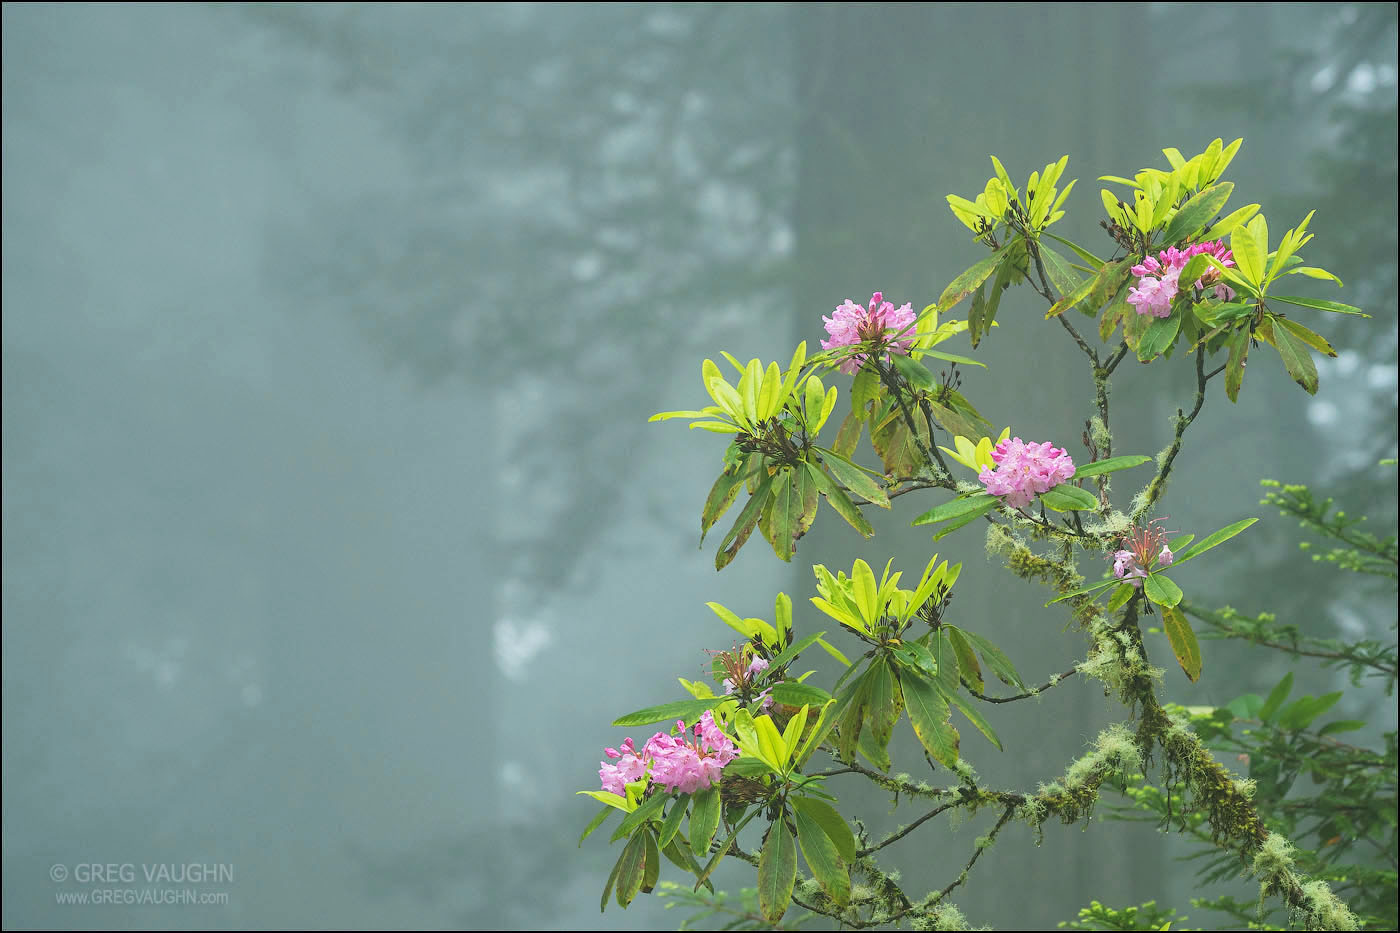 Rhododendron bush with pink flowers in a foggy forest